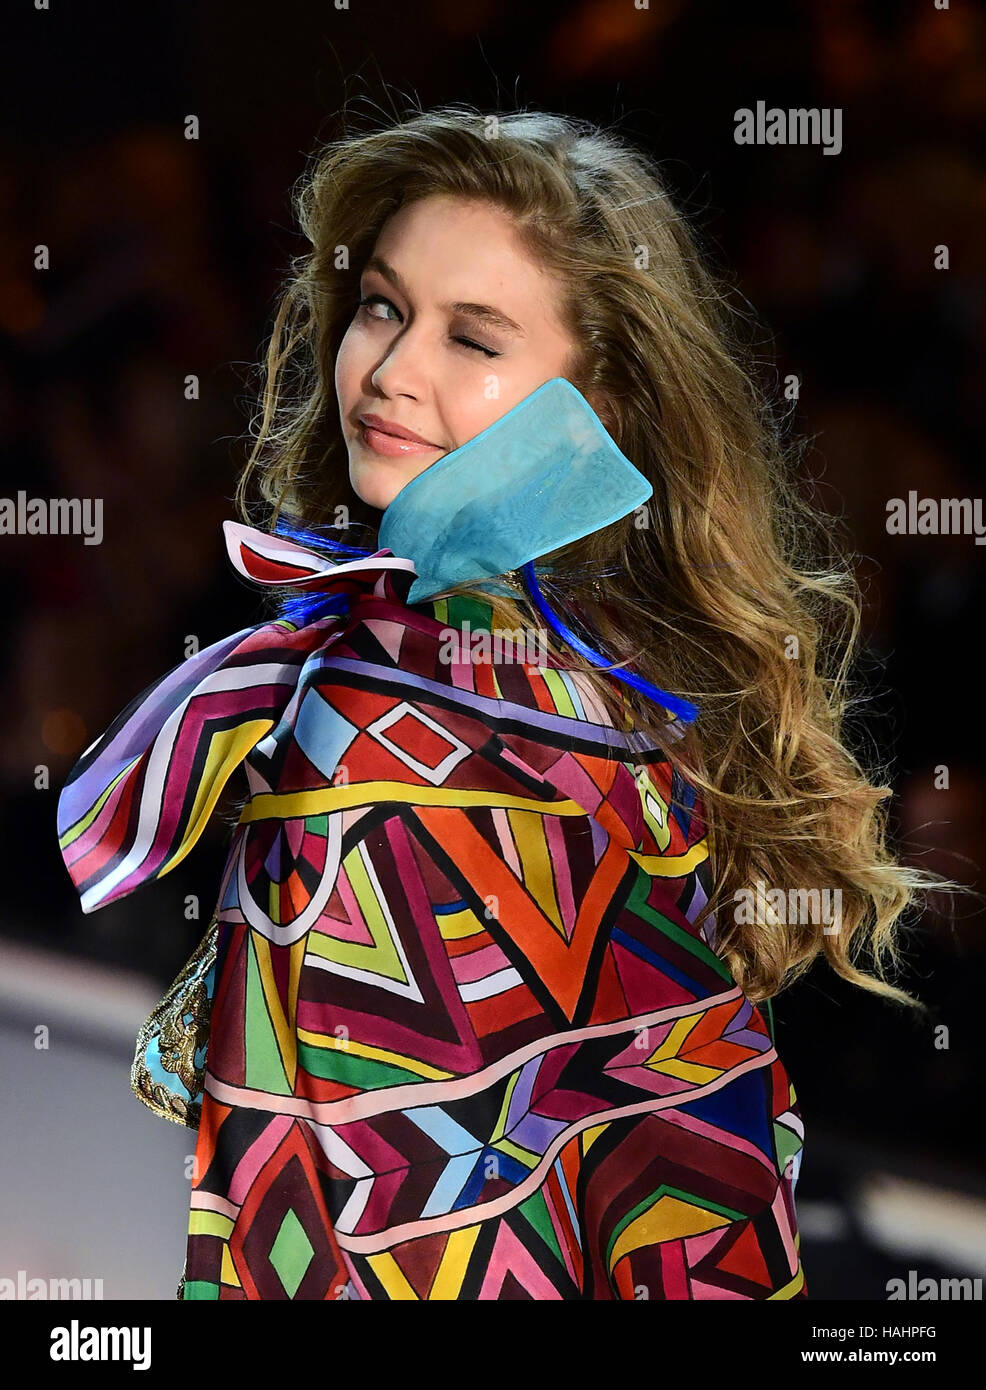 Gigi Hadid during the Victoria's Secret fashion show, held at The Grand Palais in Paris, France. Stock Photo